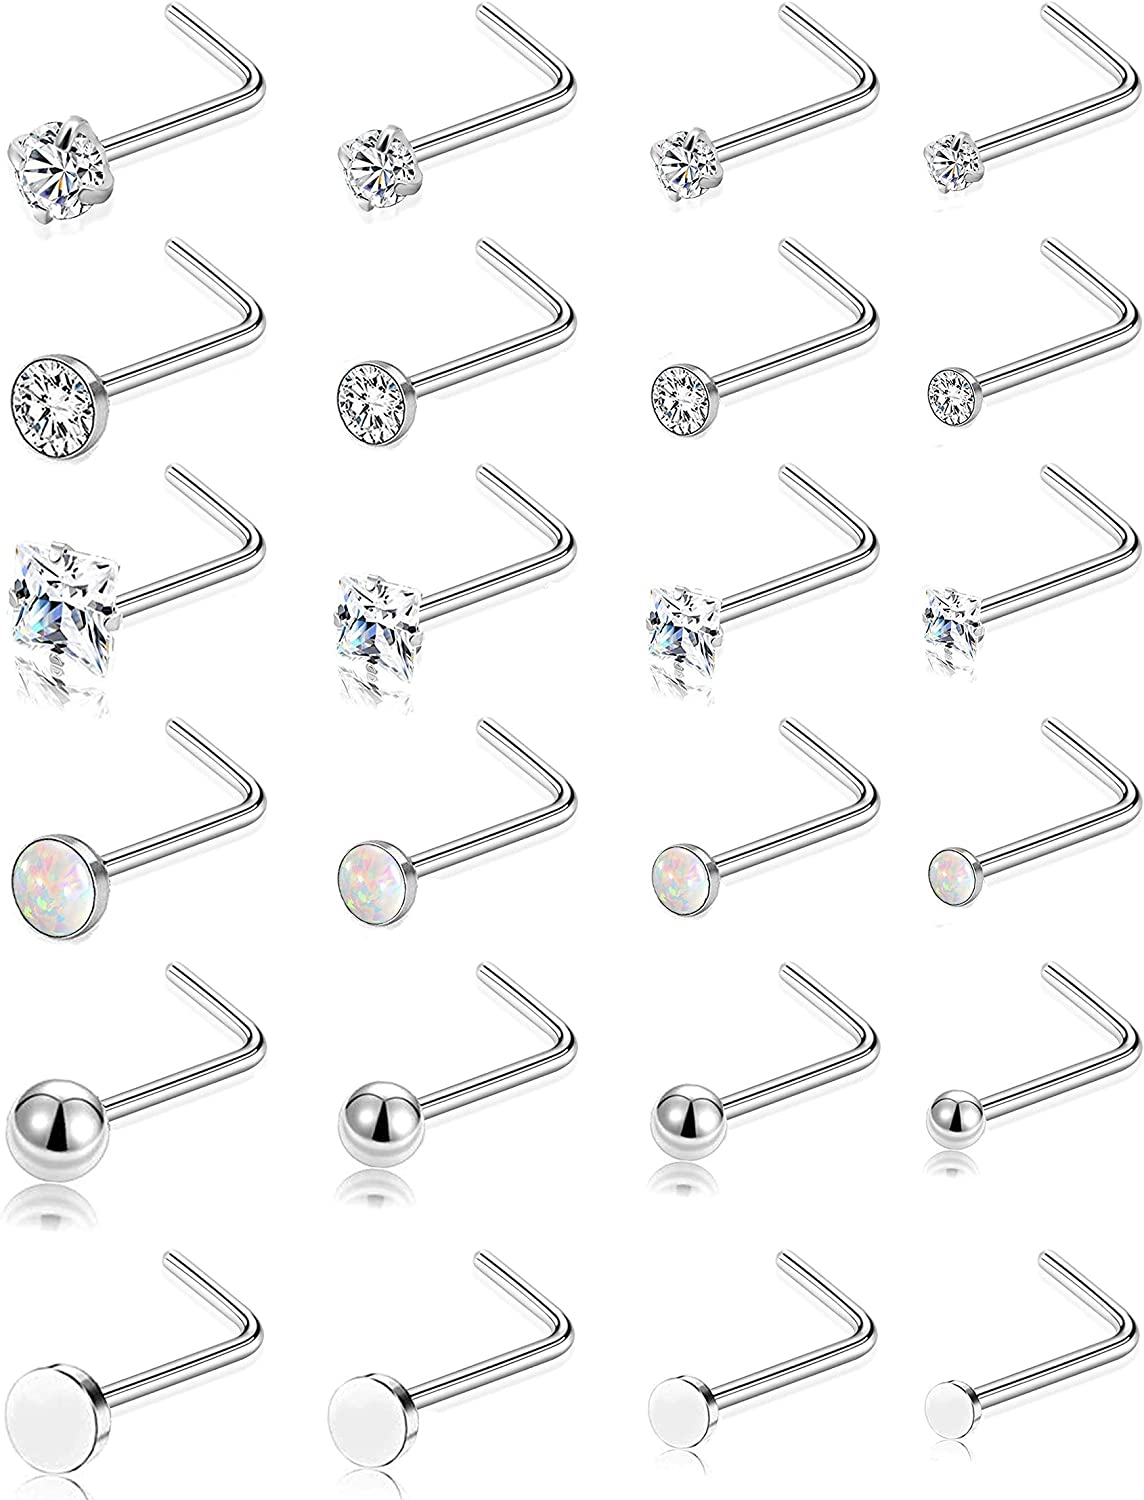 Tornito 24Pcs Nose Studs Stainless Steel Flat Ball CZ Opal Bone L Screw Shaped Nose Body Piercing Jewelry for Men Women 1.5-2-2.5-3 mm 20G